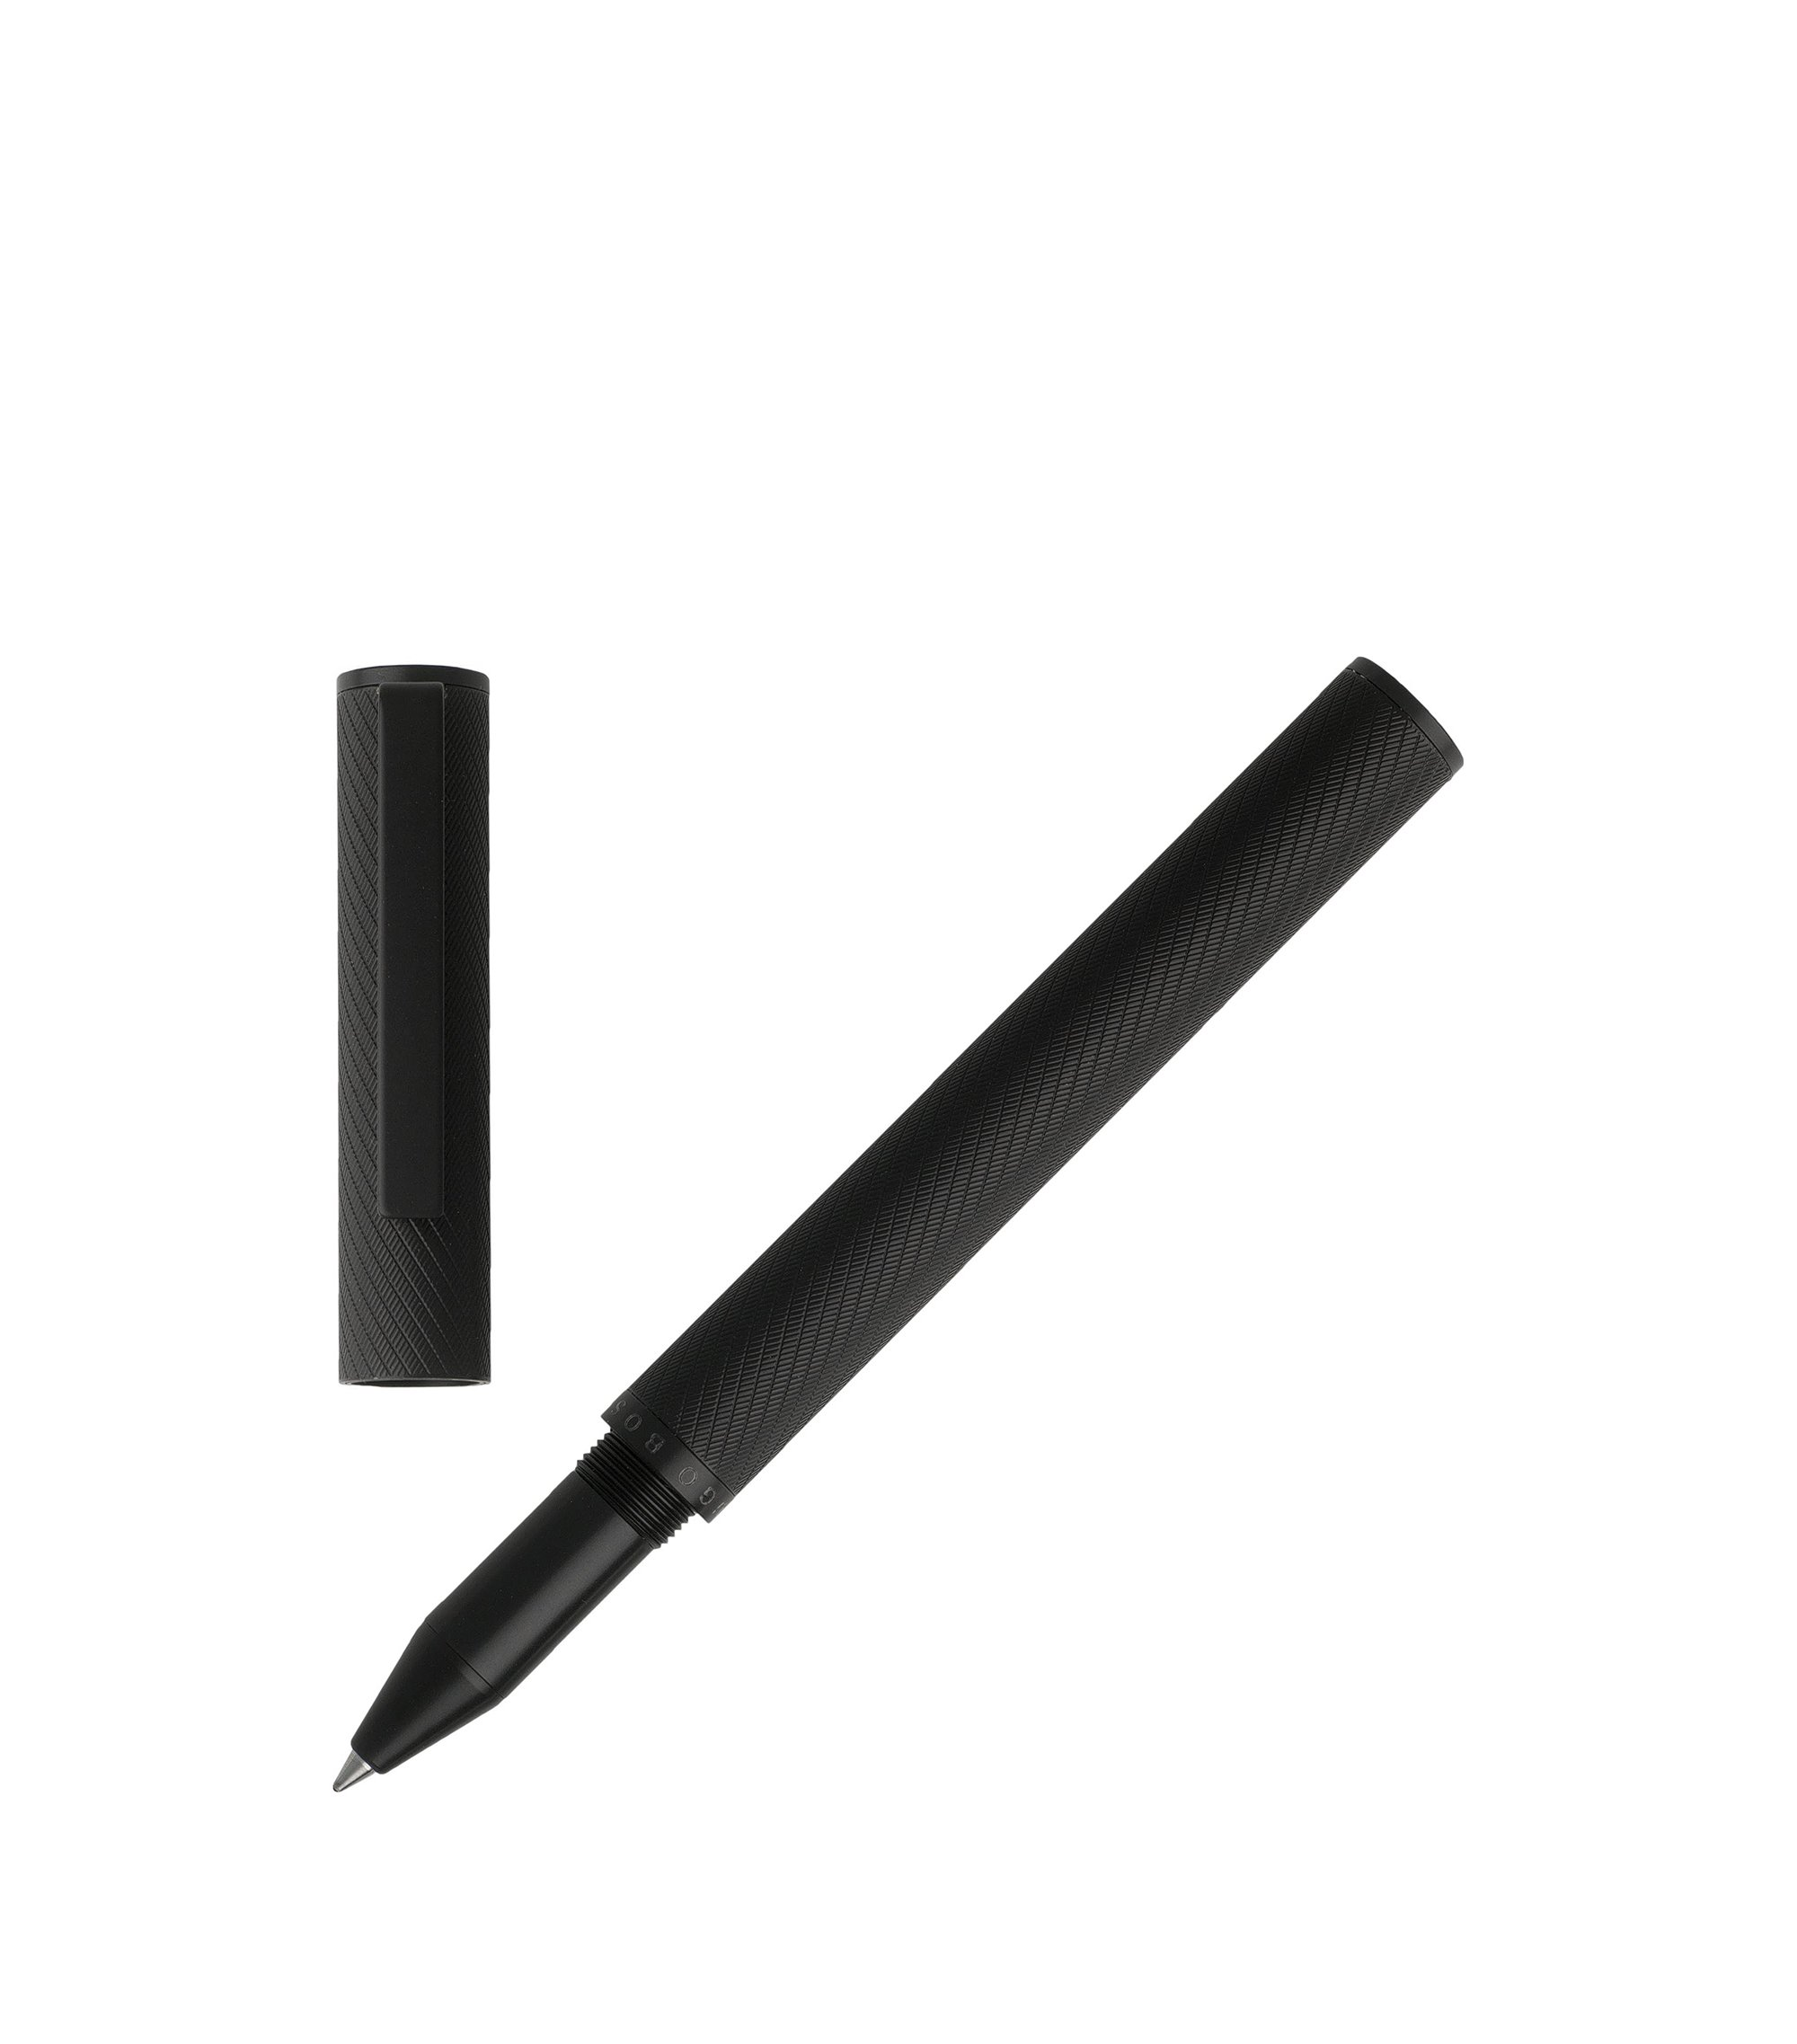 Rollerball pen with textured black-lacquer barrel, Black